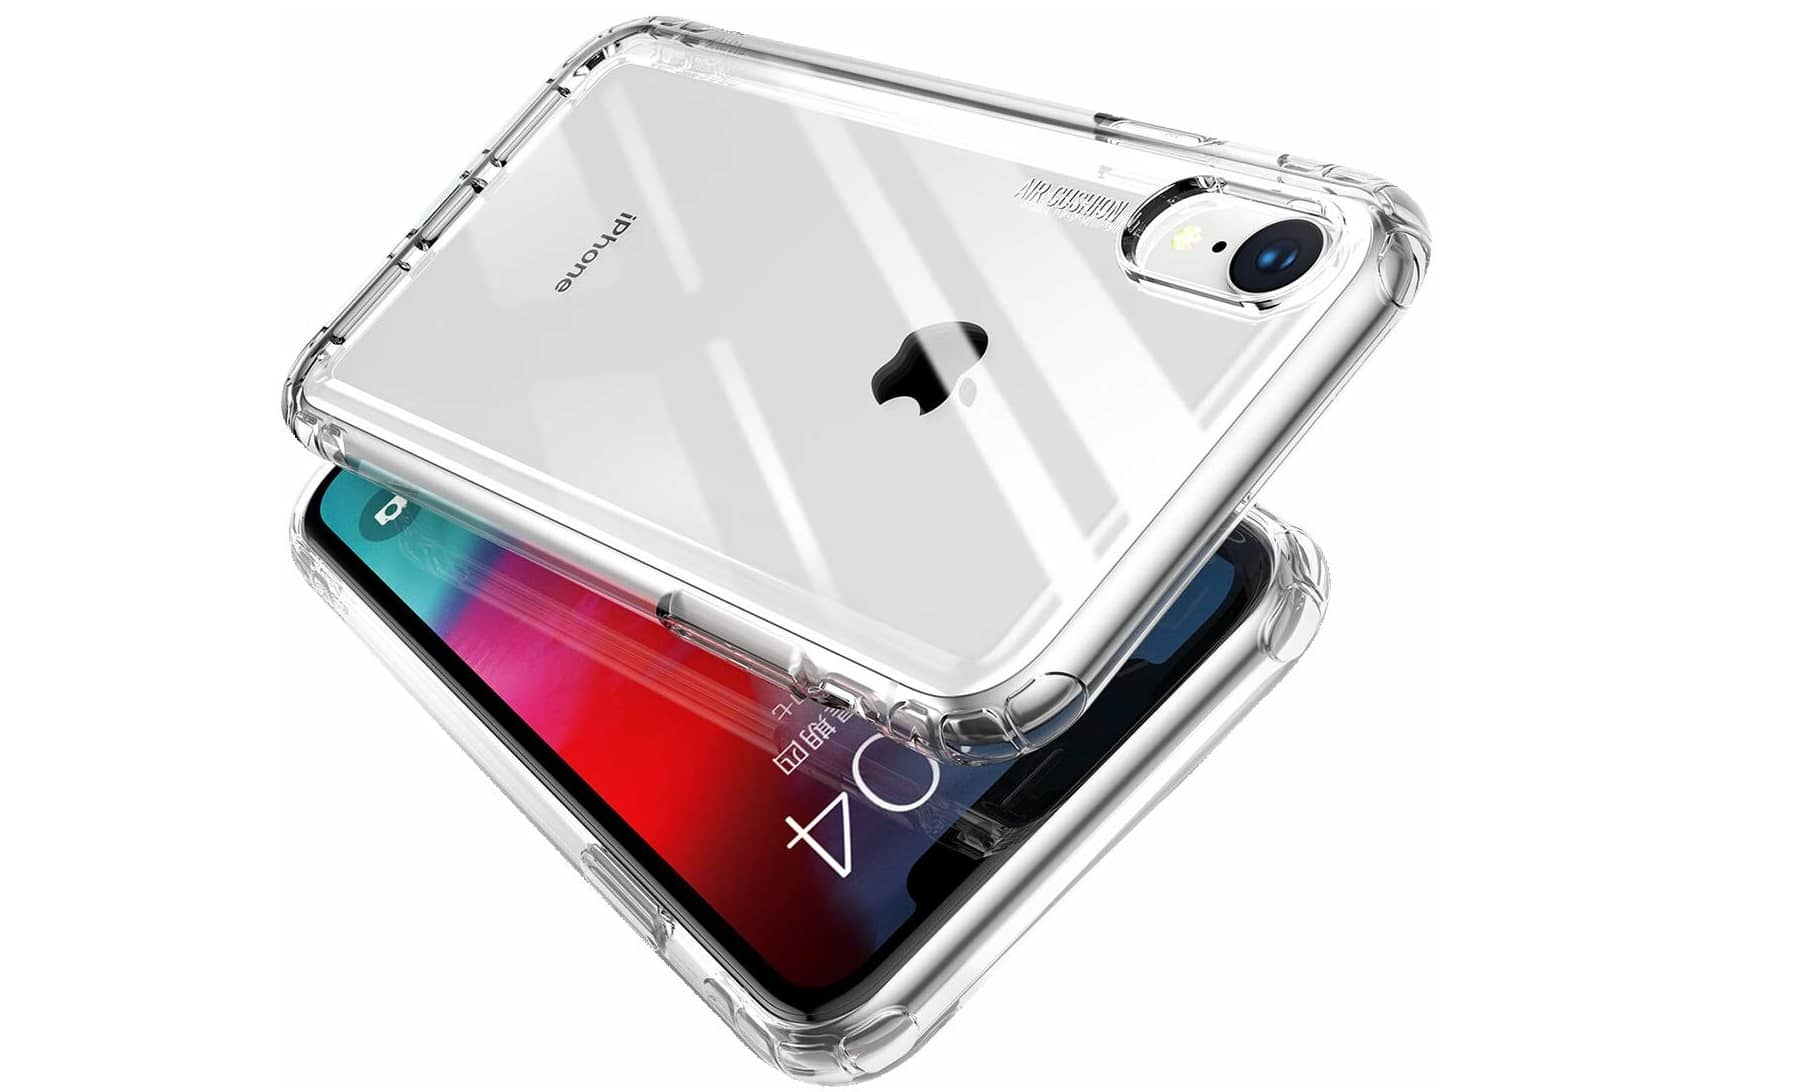 MKOAWA Clear Protective Heavy Duty Case iPhone XR